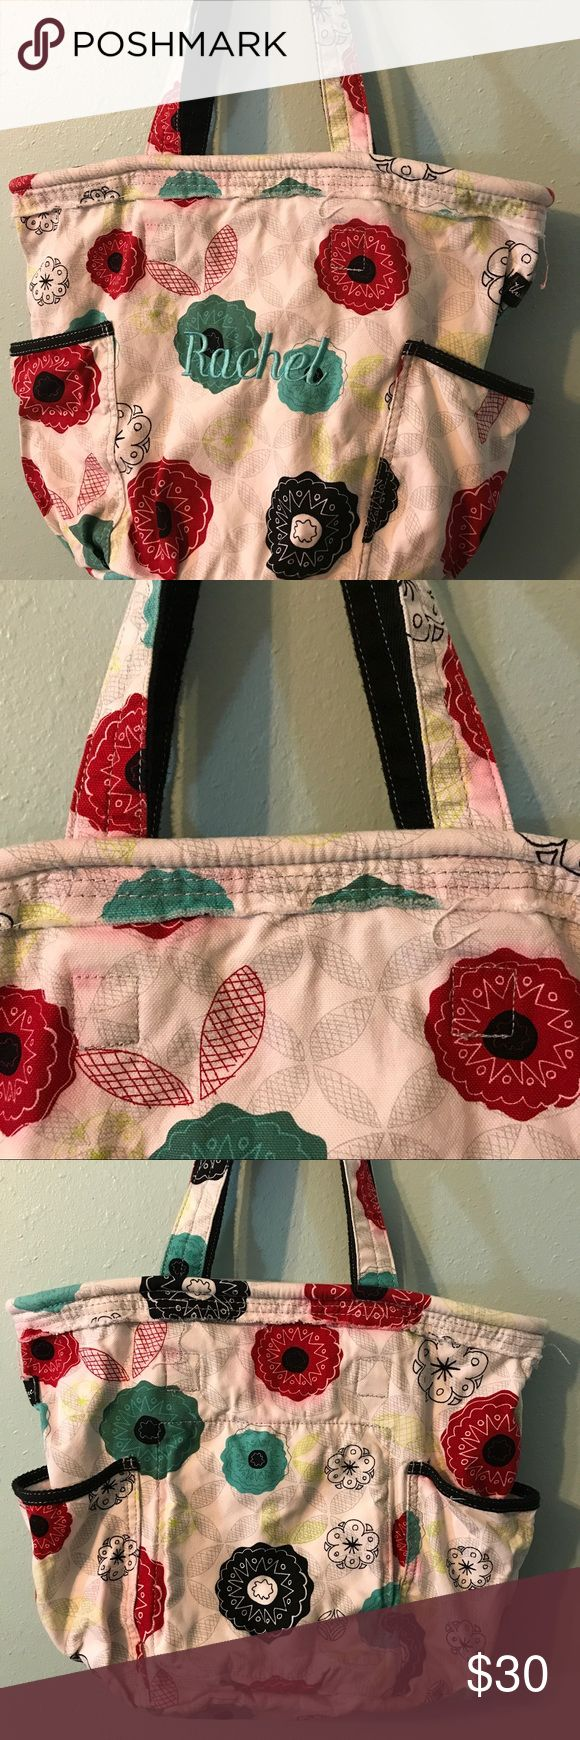 "Thirty One ""Rachel"" Tote Handbag Very cute Large Thirty One ""Rachel"" Tote Handbag!!! This was used a couple times for vacation. I'm selling items I no longer use. There is a zippered pocket and two open pockets  There is also a clip inside for keys. I did wash this bag, which I shouldn't have done, and now around most of the Red Flowers there is bleeding (shown in the pictures). 😕 It is a great bag and very roomy!!! Lots of life left! Bundle and save! Or make an offer! Smoke free home…"